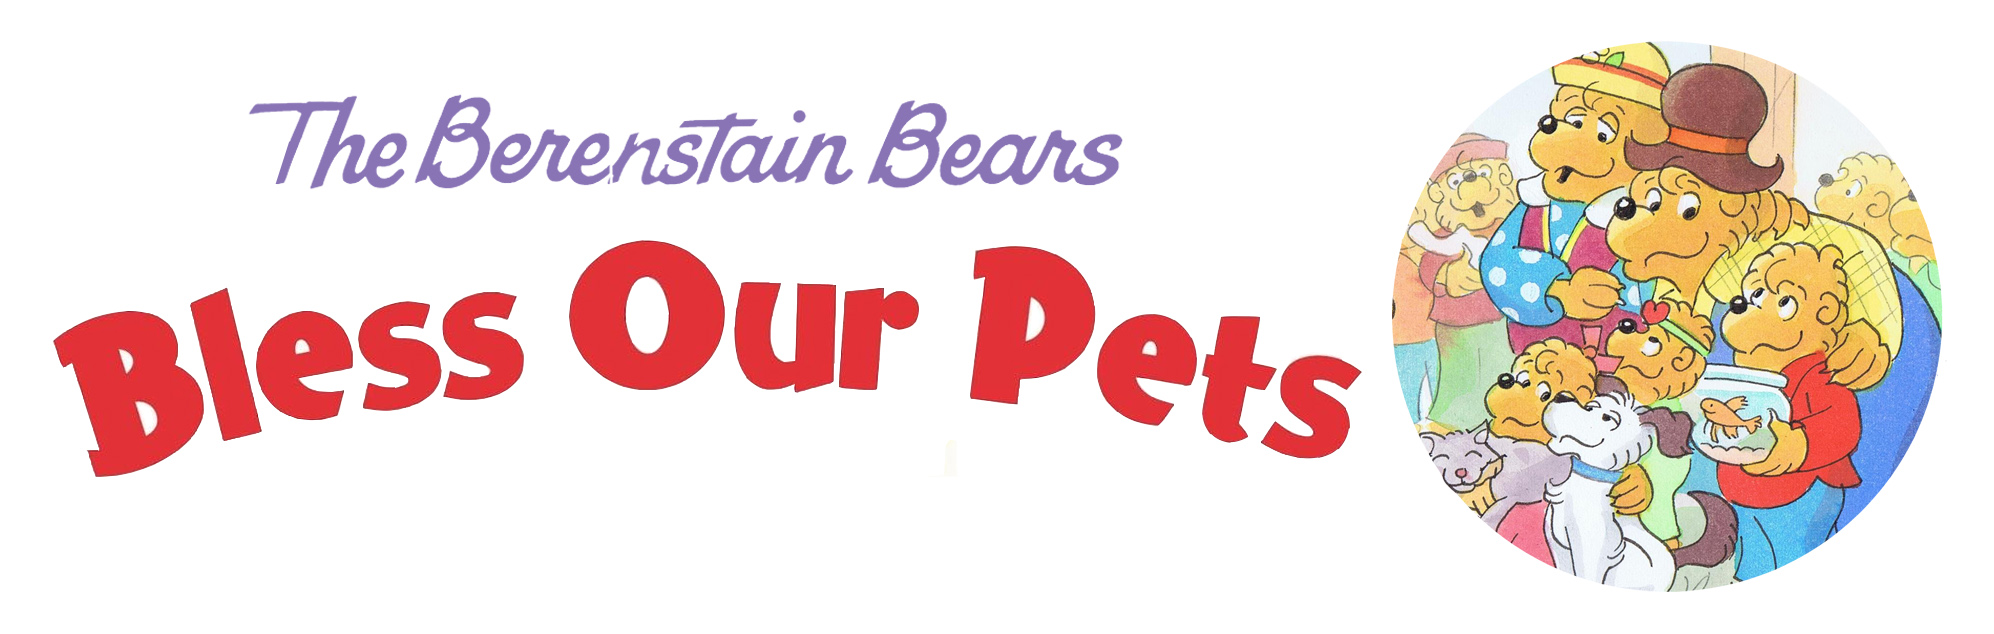 The Berenstain bears Bless Their Pets